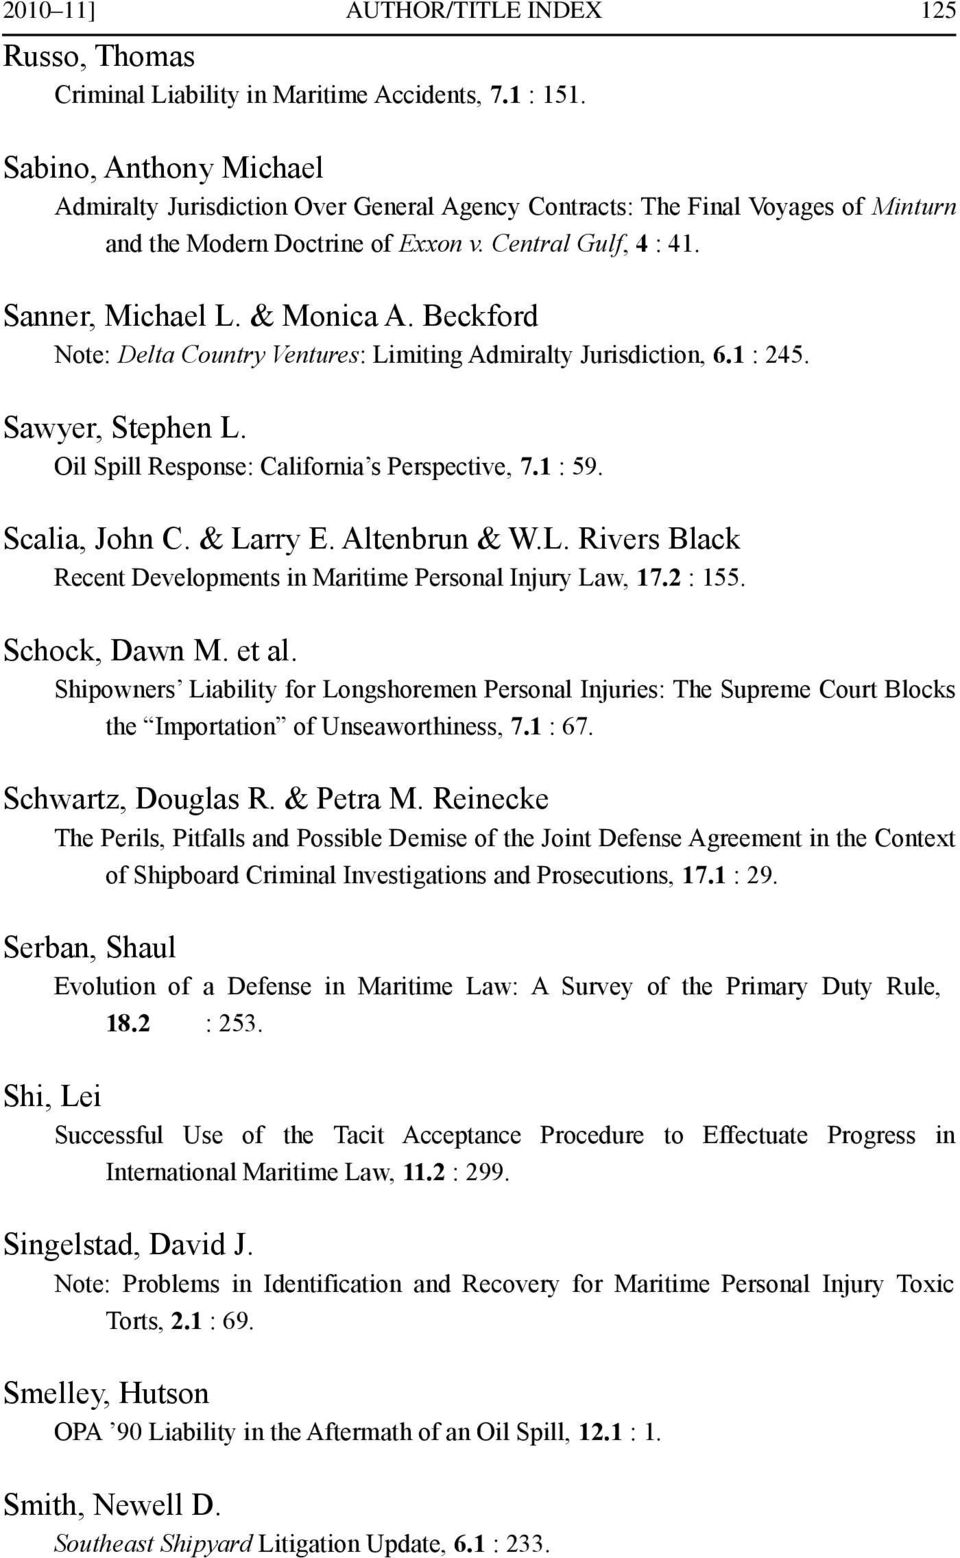 Beckford Note: Delta Country Ventures: Limiting Admiralty Jurisdiction, 6.1 : 245. Sawyer, Stephen L. Oil Spill Response: California s Perspective, 7.1 : 59. Scalia, John C. & Larry E. Altenbrun & W.